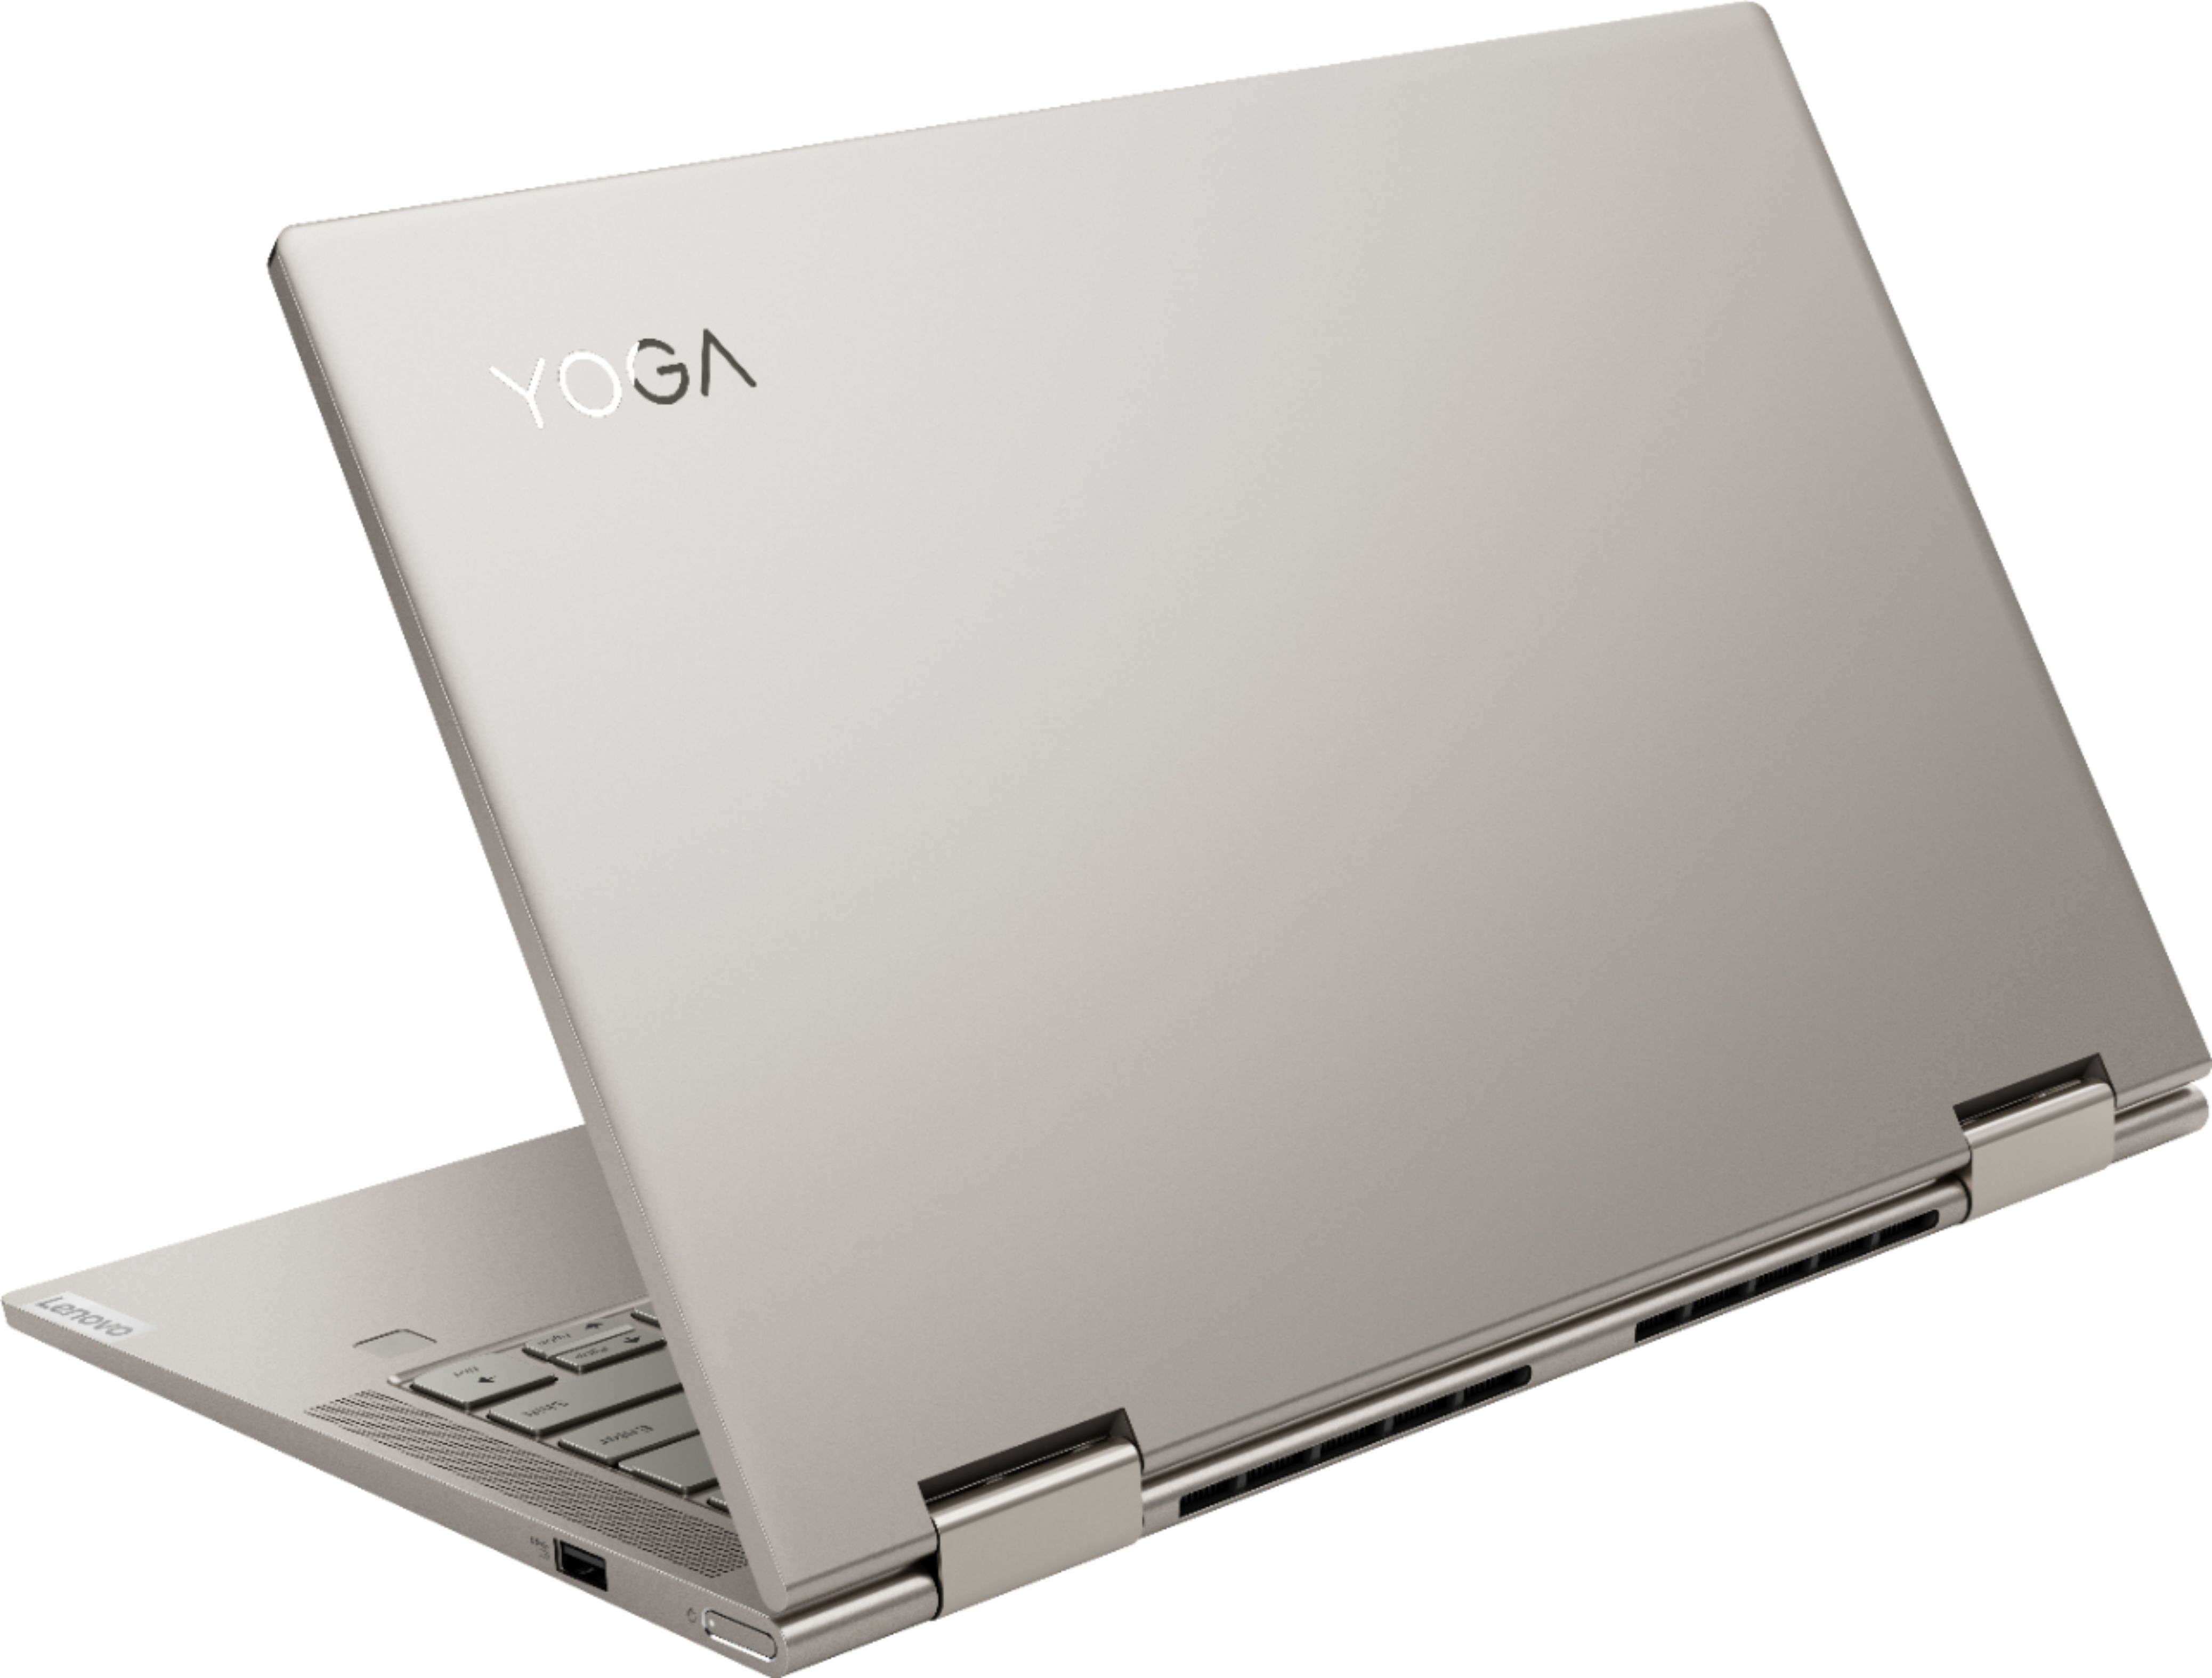 "Alt View Zoom 1. Lenovo - Yoga C740 2-in-1 14"" Touch-Screen Laptop - Intel Core i5 - 8GB Memory - 256GB Solid State Drive - Mica."